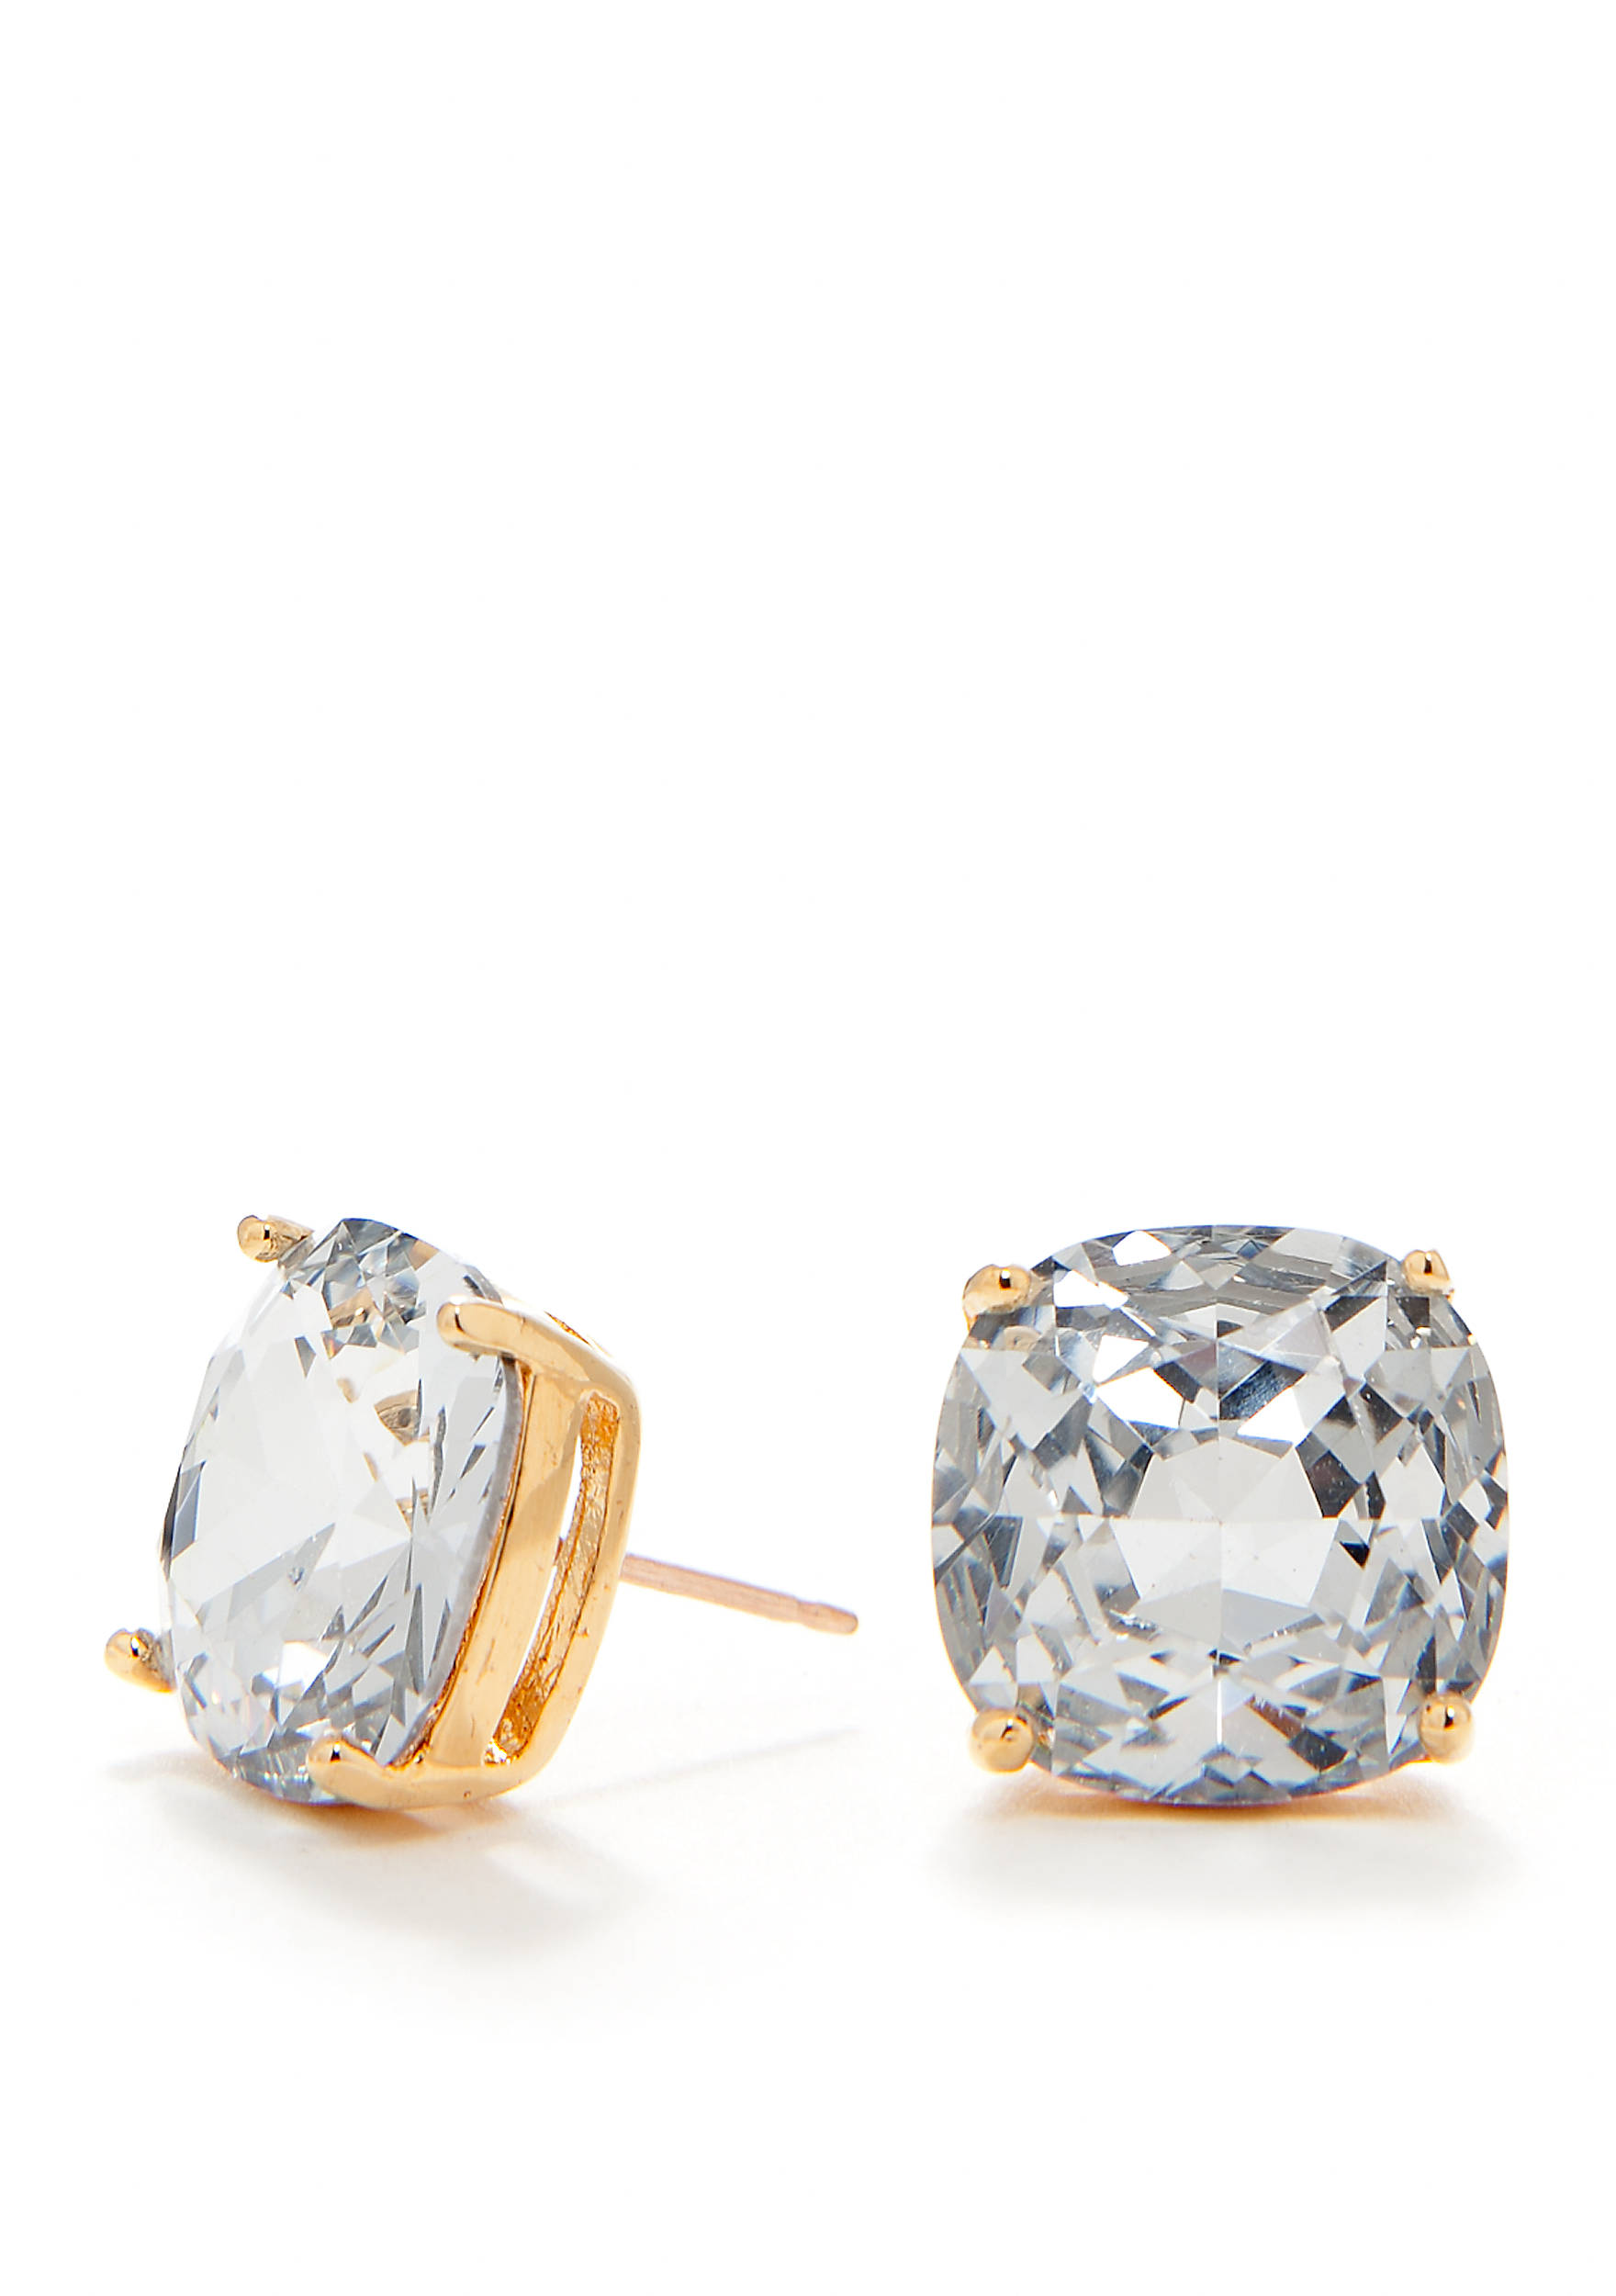 Back To Fashion Jewelry Kate Spade New York® Small Square Stud Earrings